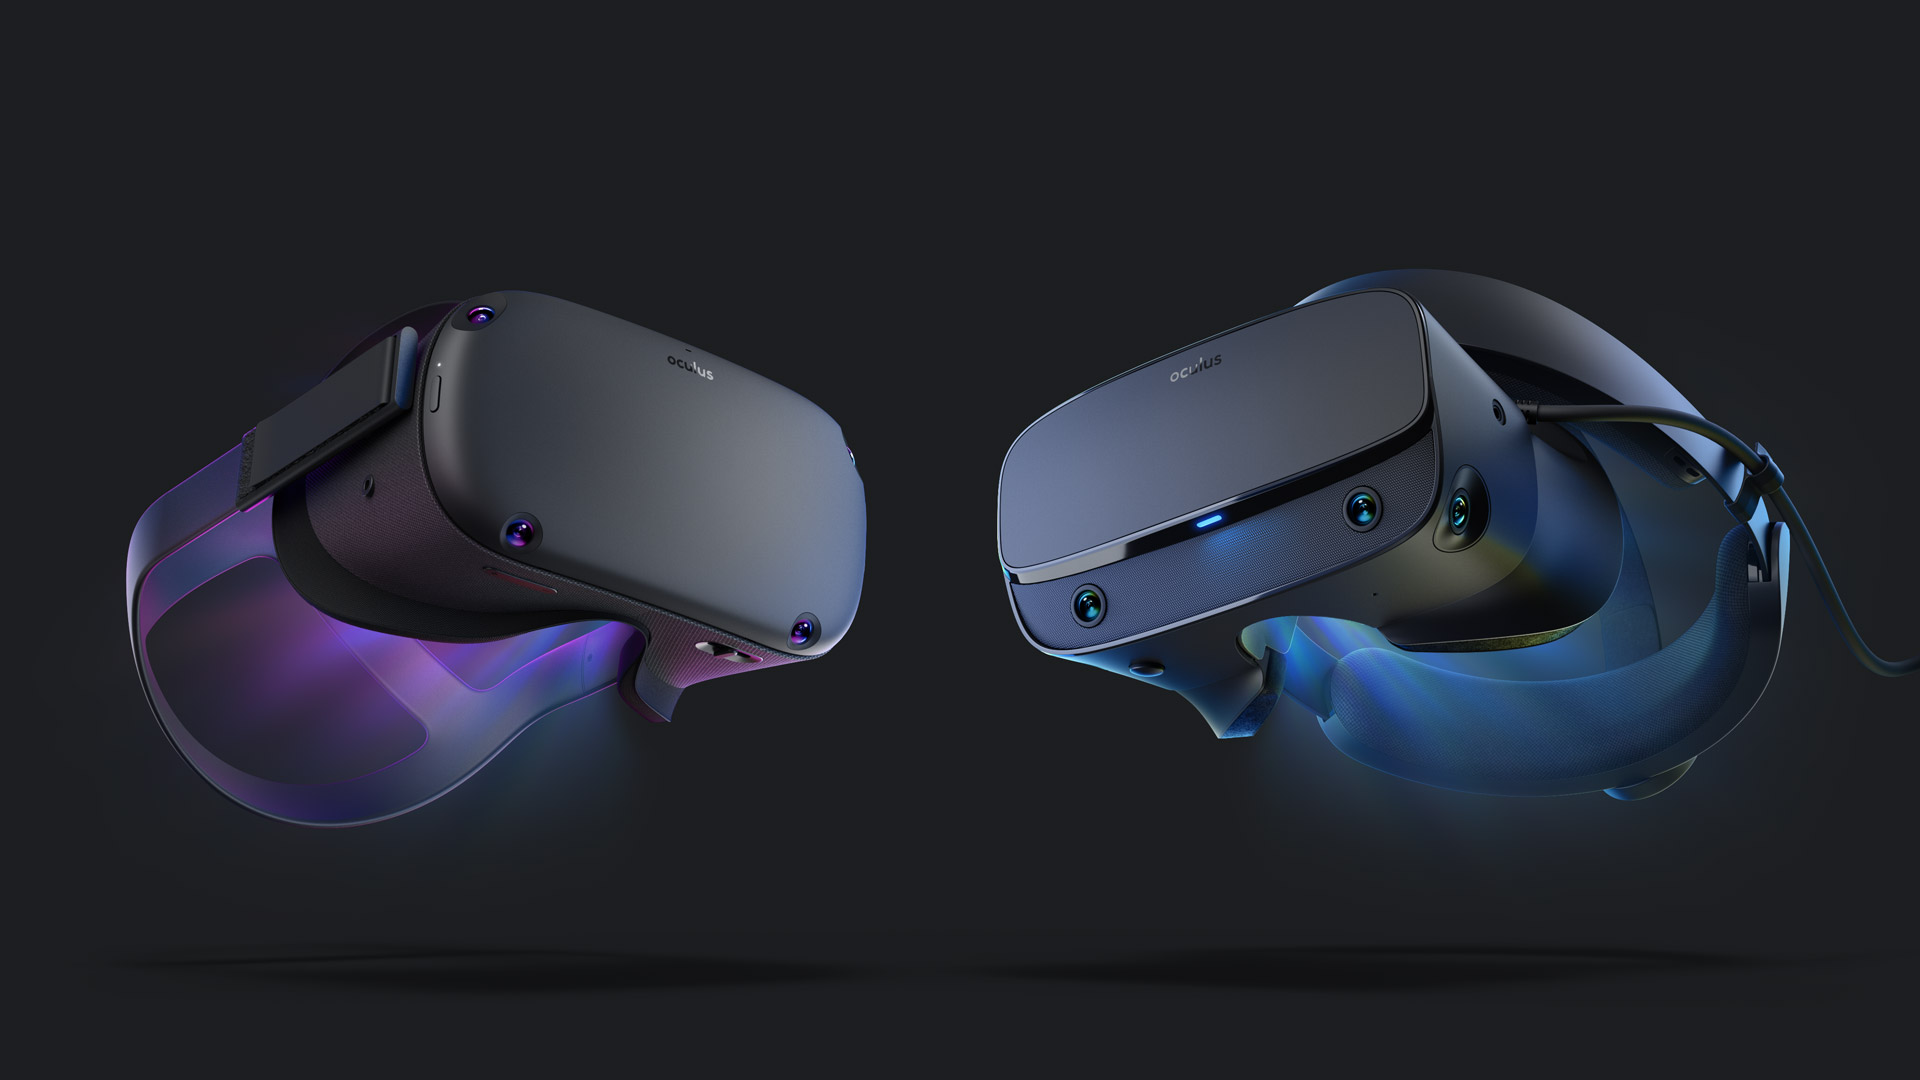 Everything We Know About the FOV and IPD of Rift S & Quest